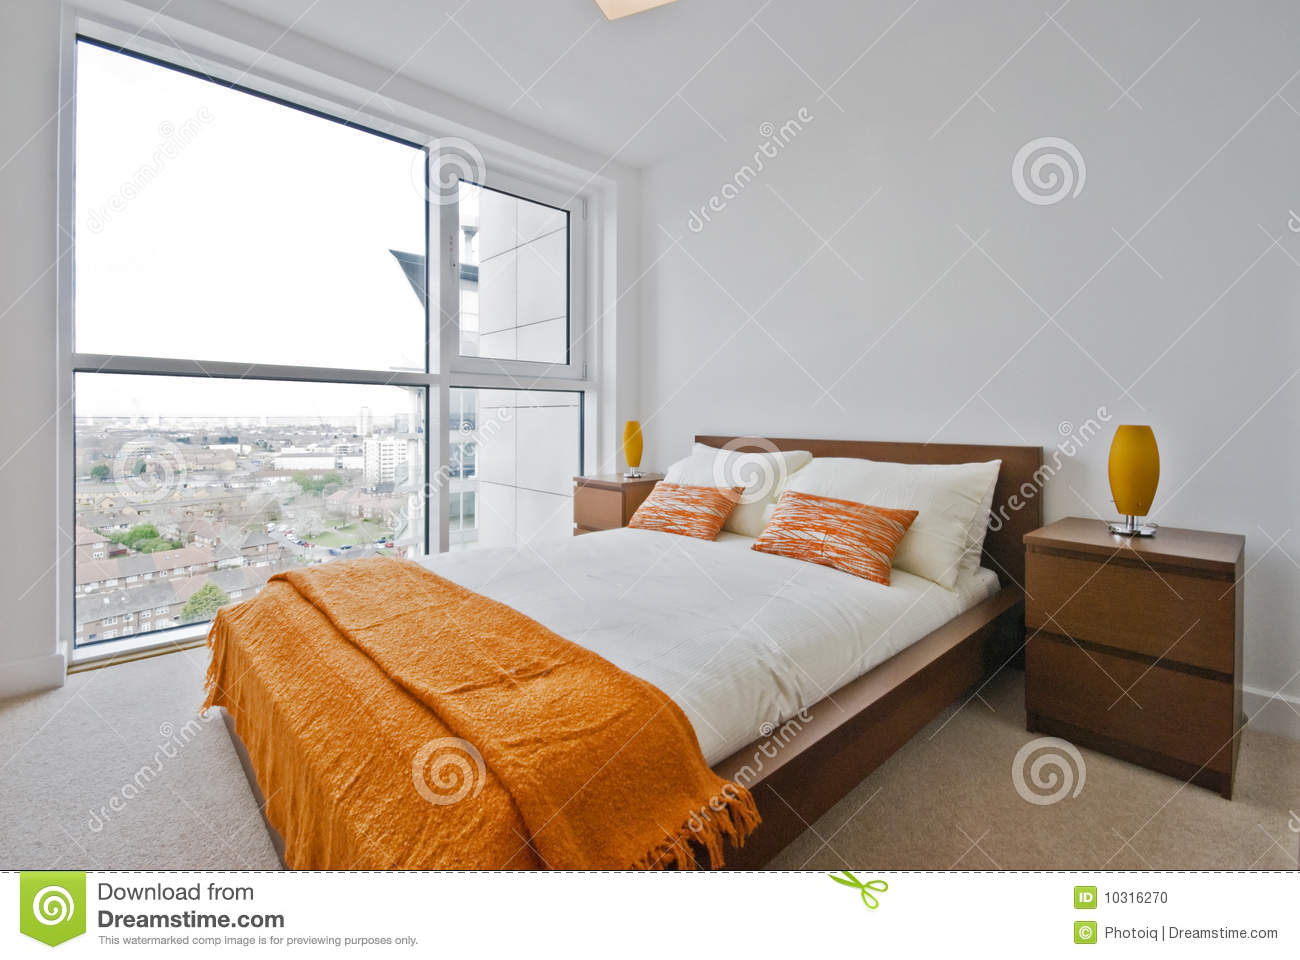 Bedroom With Floor To Ceiling Windows Stock Photo Image